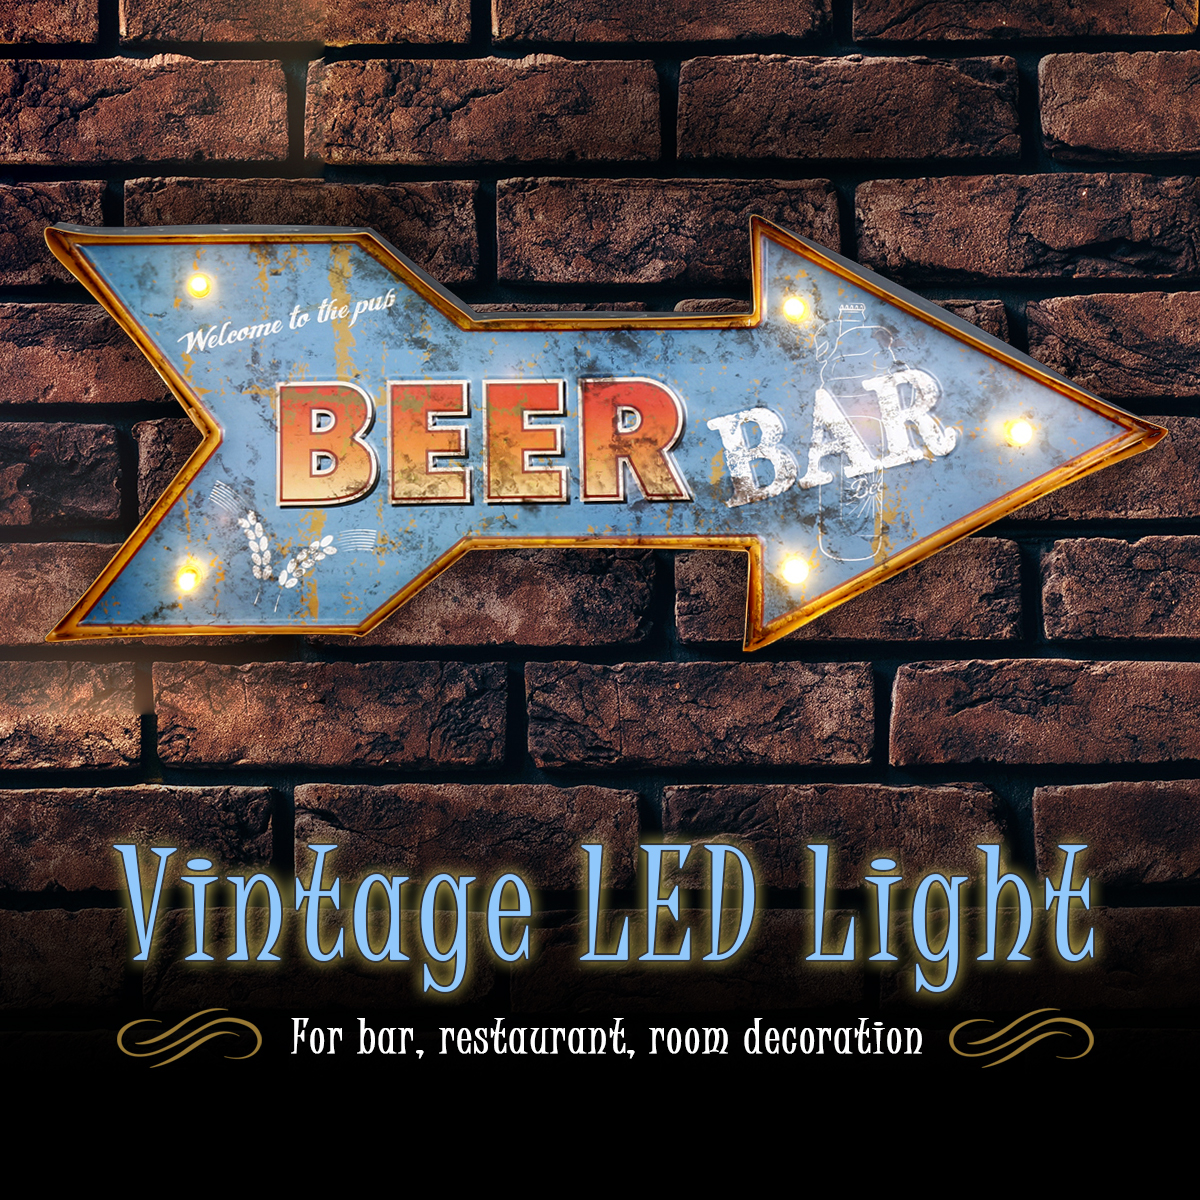 LED Mental Light Vintage Arrow Beer Sign Bar Game Room Wall Hangings Decorations Home Decor толстовка wearcraft premium унисекс printio мой сосед тоторо my neighbor totoro